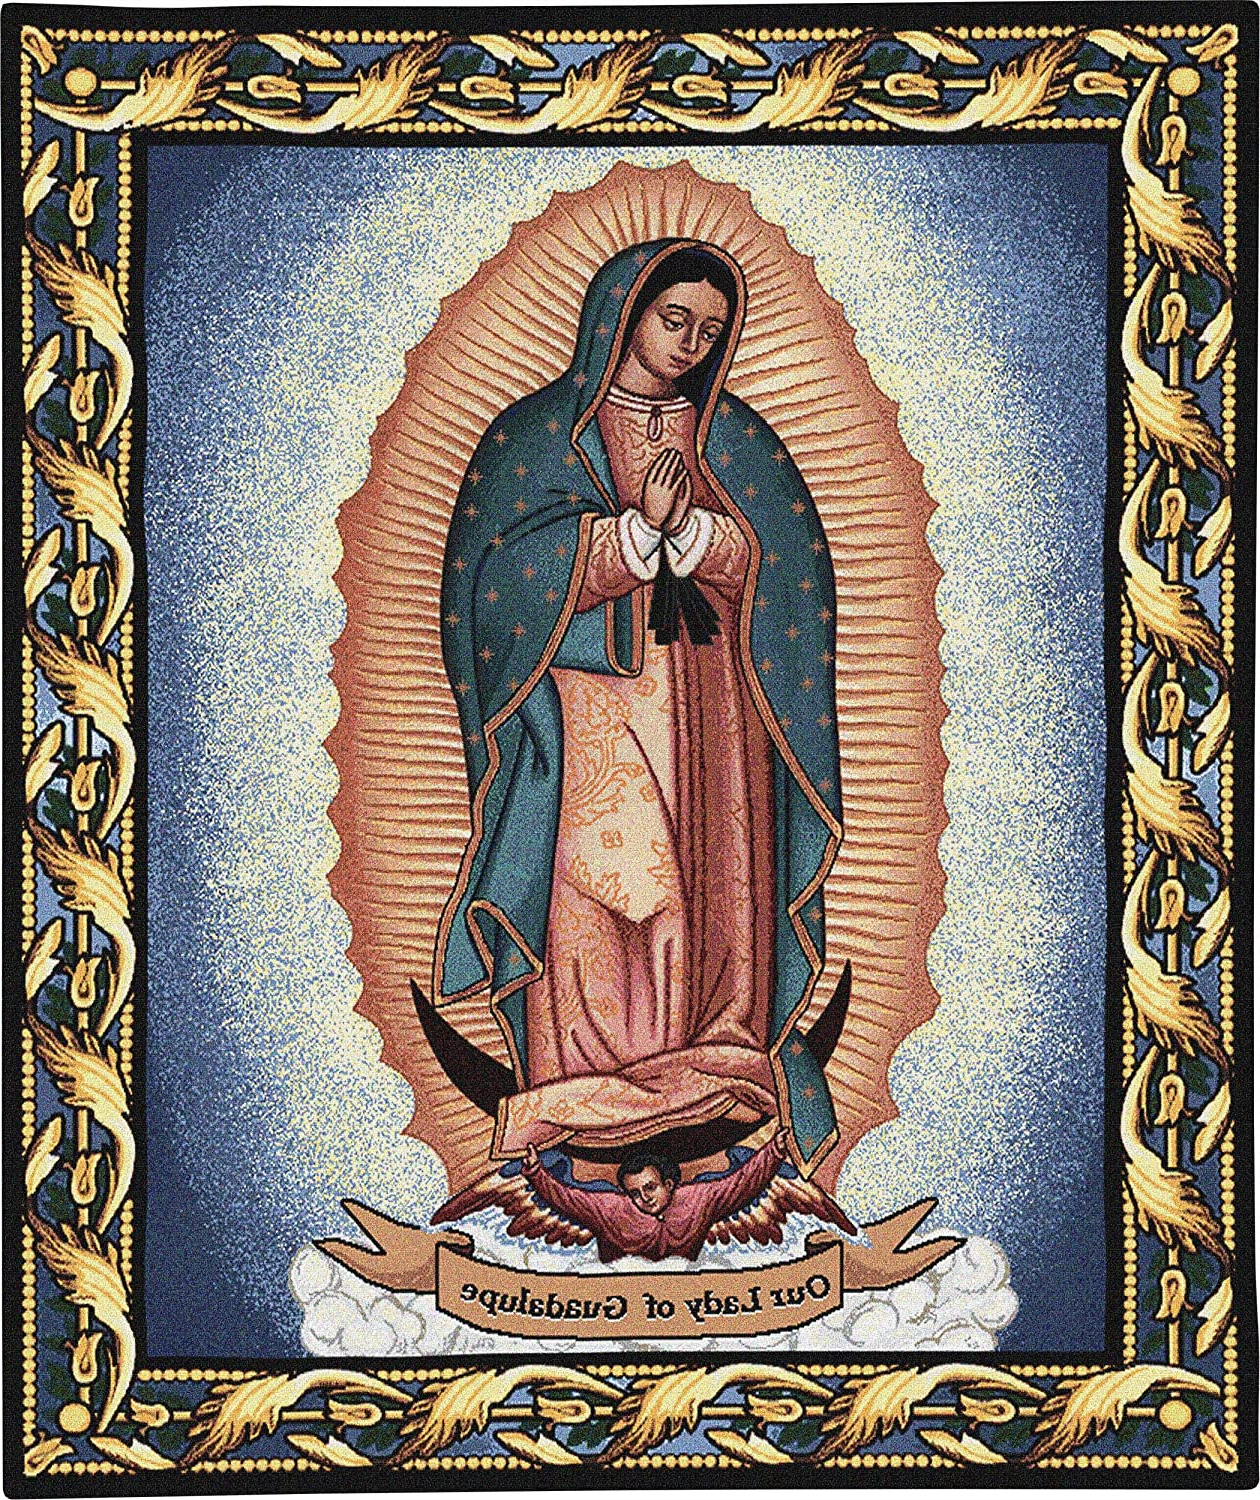 [%our Lady Of Guadalupejuan Diego | Woven Tapestry Wall Art Hanging | Mother Mary Inspirational Religious Catholic | 100% Cotton Usa Size 32x26 Inside Best And Newest Blended Fabric Our Lady Of Guadalupe Wall Hangings|blended Fabric Our Lady Of Guadalupe Wall Hangings For Trendy Our Lady Of Guadalupejuan Diego | Woven Tapestry Wall Art Hanging | Mother Mary Inspirational Religious Catholic | 100% Cotton Usa Size 32x26|most Current Blended Fabric Our Lady Of Guadalupe Wall Hangings In Our Lady Of Guadalupejuan Diego | Woven Tapestry Wall Art Hanging | Mother Mary Inspirational Religious Catholic | 100% Cotton Usa Size 32x26|most Current Our Lady Of Guadalupejuan Diego | Woven Tapestry Wall Art Hanging | Mother Mary Inspirational Religious Catholic | 100% Cotton Usa Size 32x26 For Blended Fabric Our Lady Of Guadalupe Wall Hangings%] (View 3 of 20)